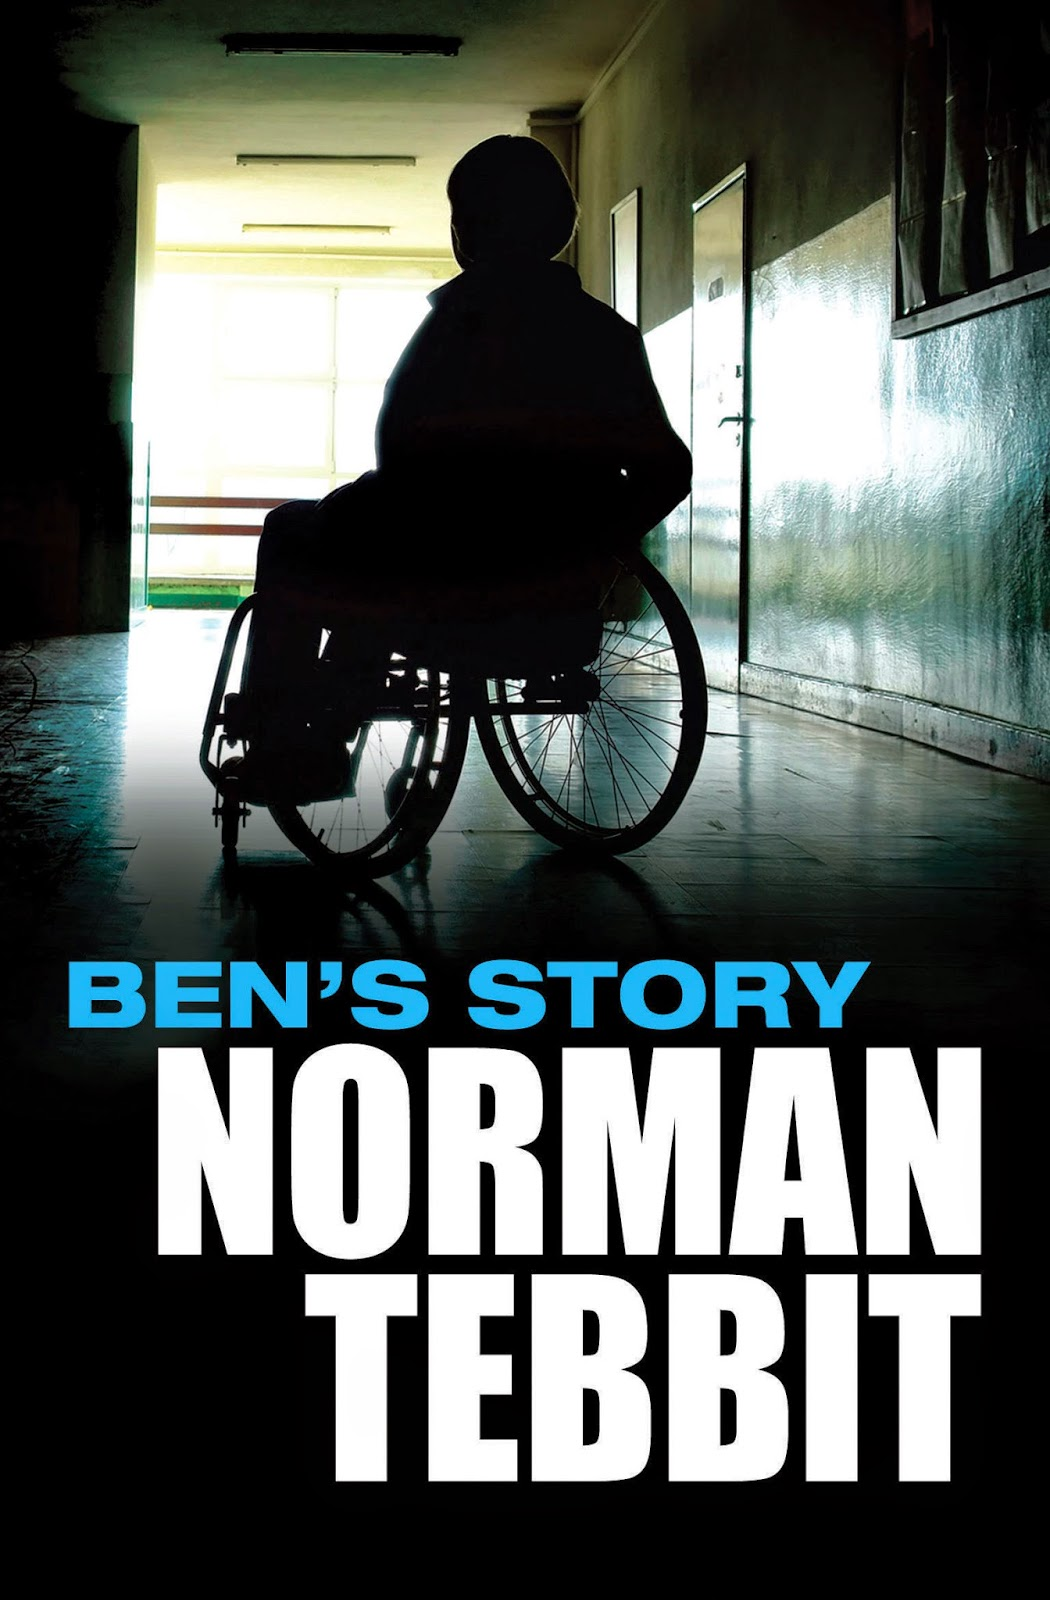 http://www.amazon.co.uk/Bens-Story-Norman-Tebbit/dp/1909698725/ref=sr_1_1?s=books&ie=UTF8&qid=1404455768&sr=1-1&keywords=tebbit+ben%27s+story